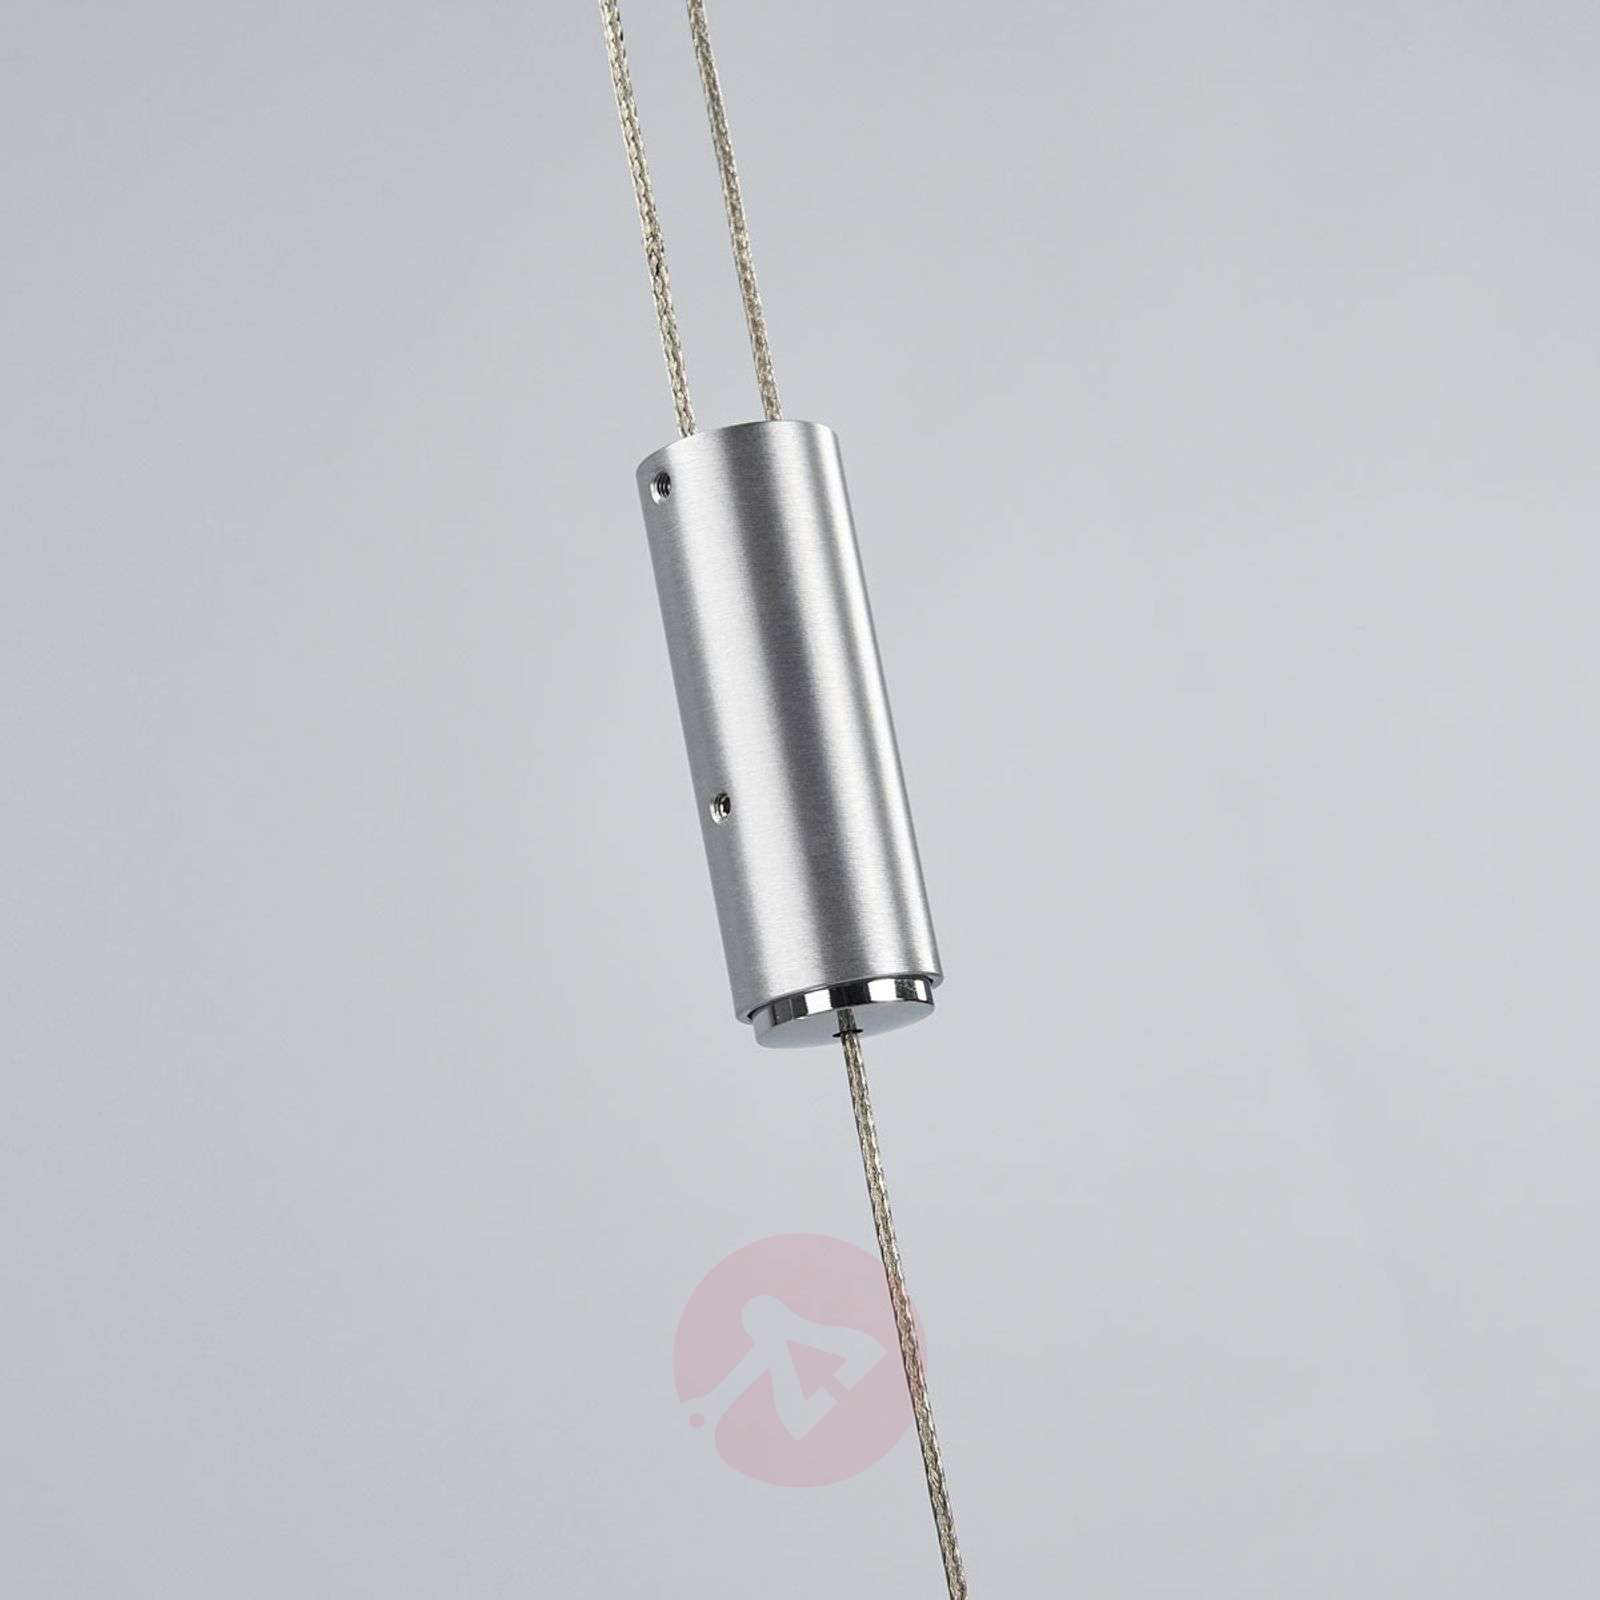 Suspension LED dimmable Lian en aluminium mat-6722420-04